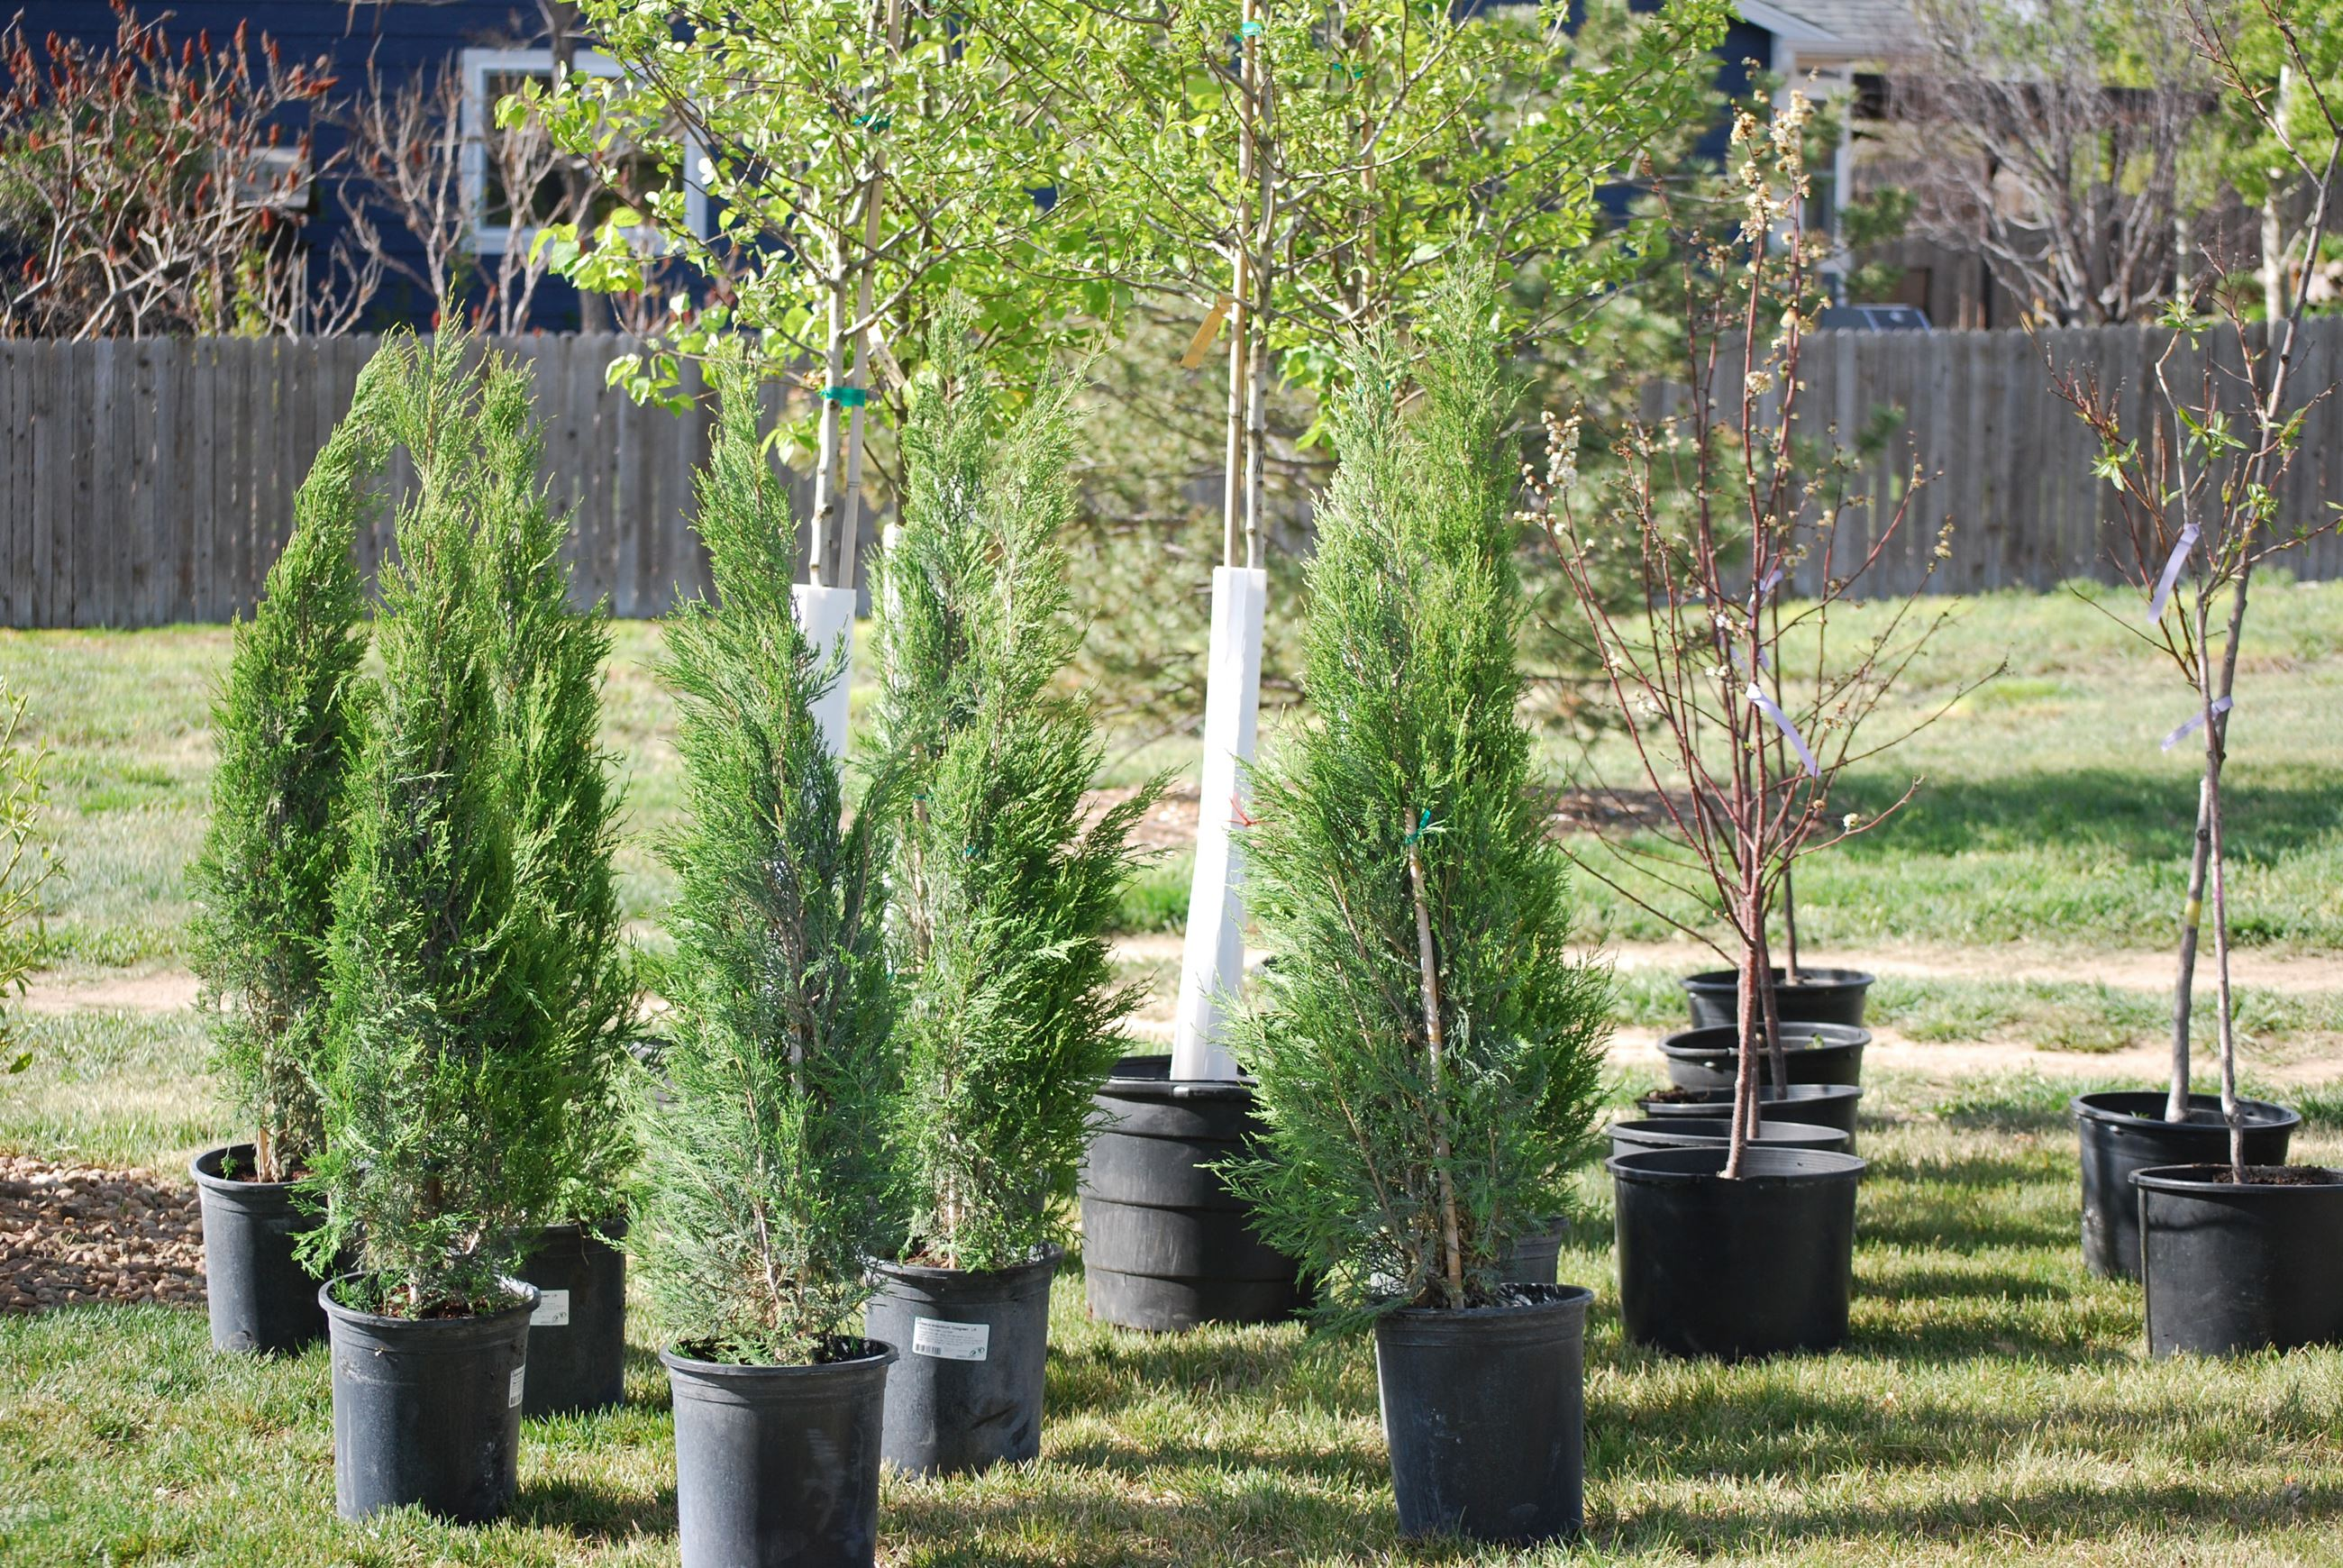 22nd Annual Erie Arbor Day & Earth Day Celebration